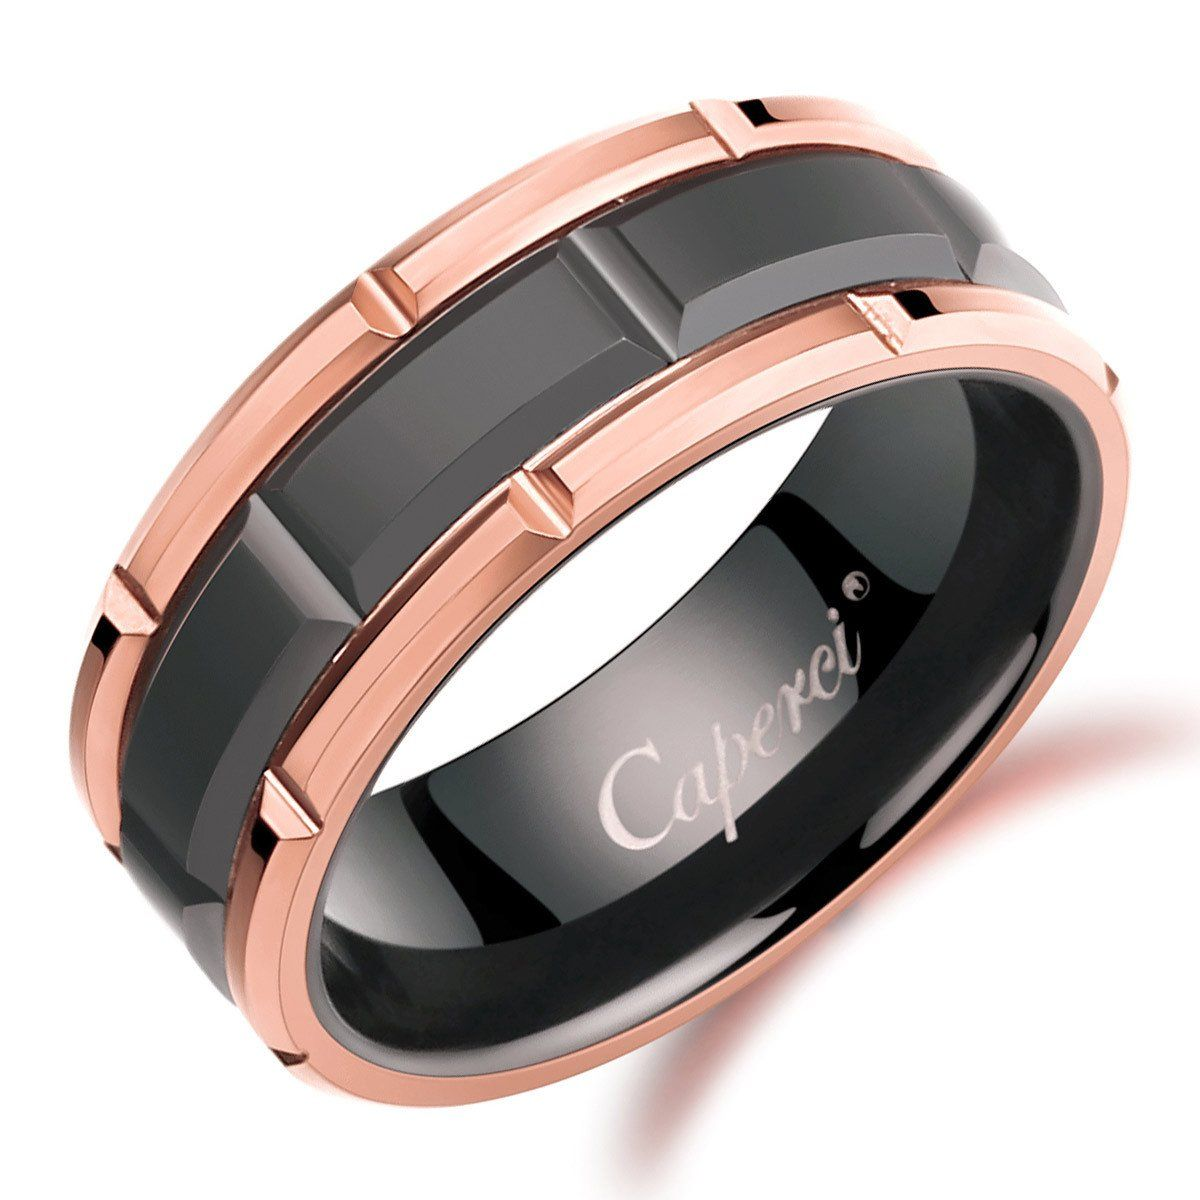 gold tungsten wedding bands Caperci Men s 8mm Black Tungsten Wedding Band Ring with Brick Pattern Rose Gold Rims